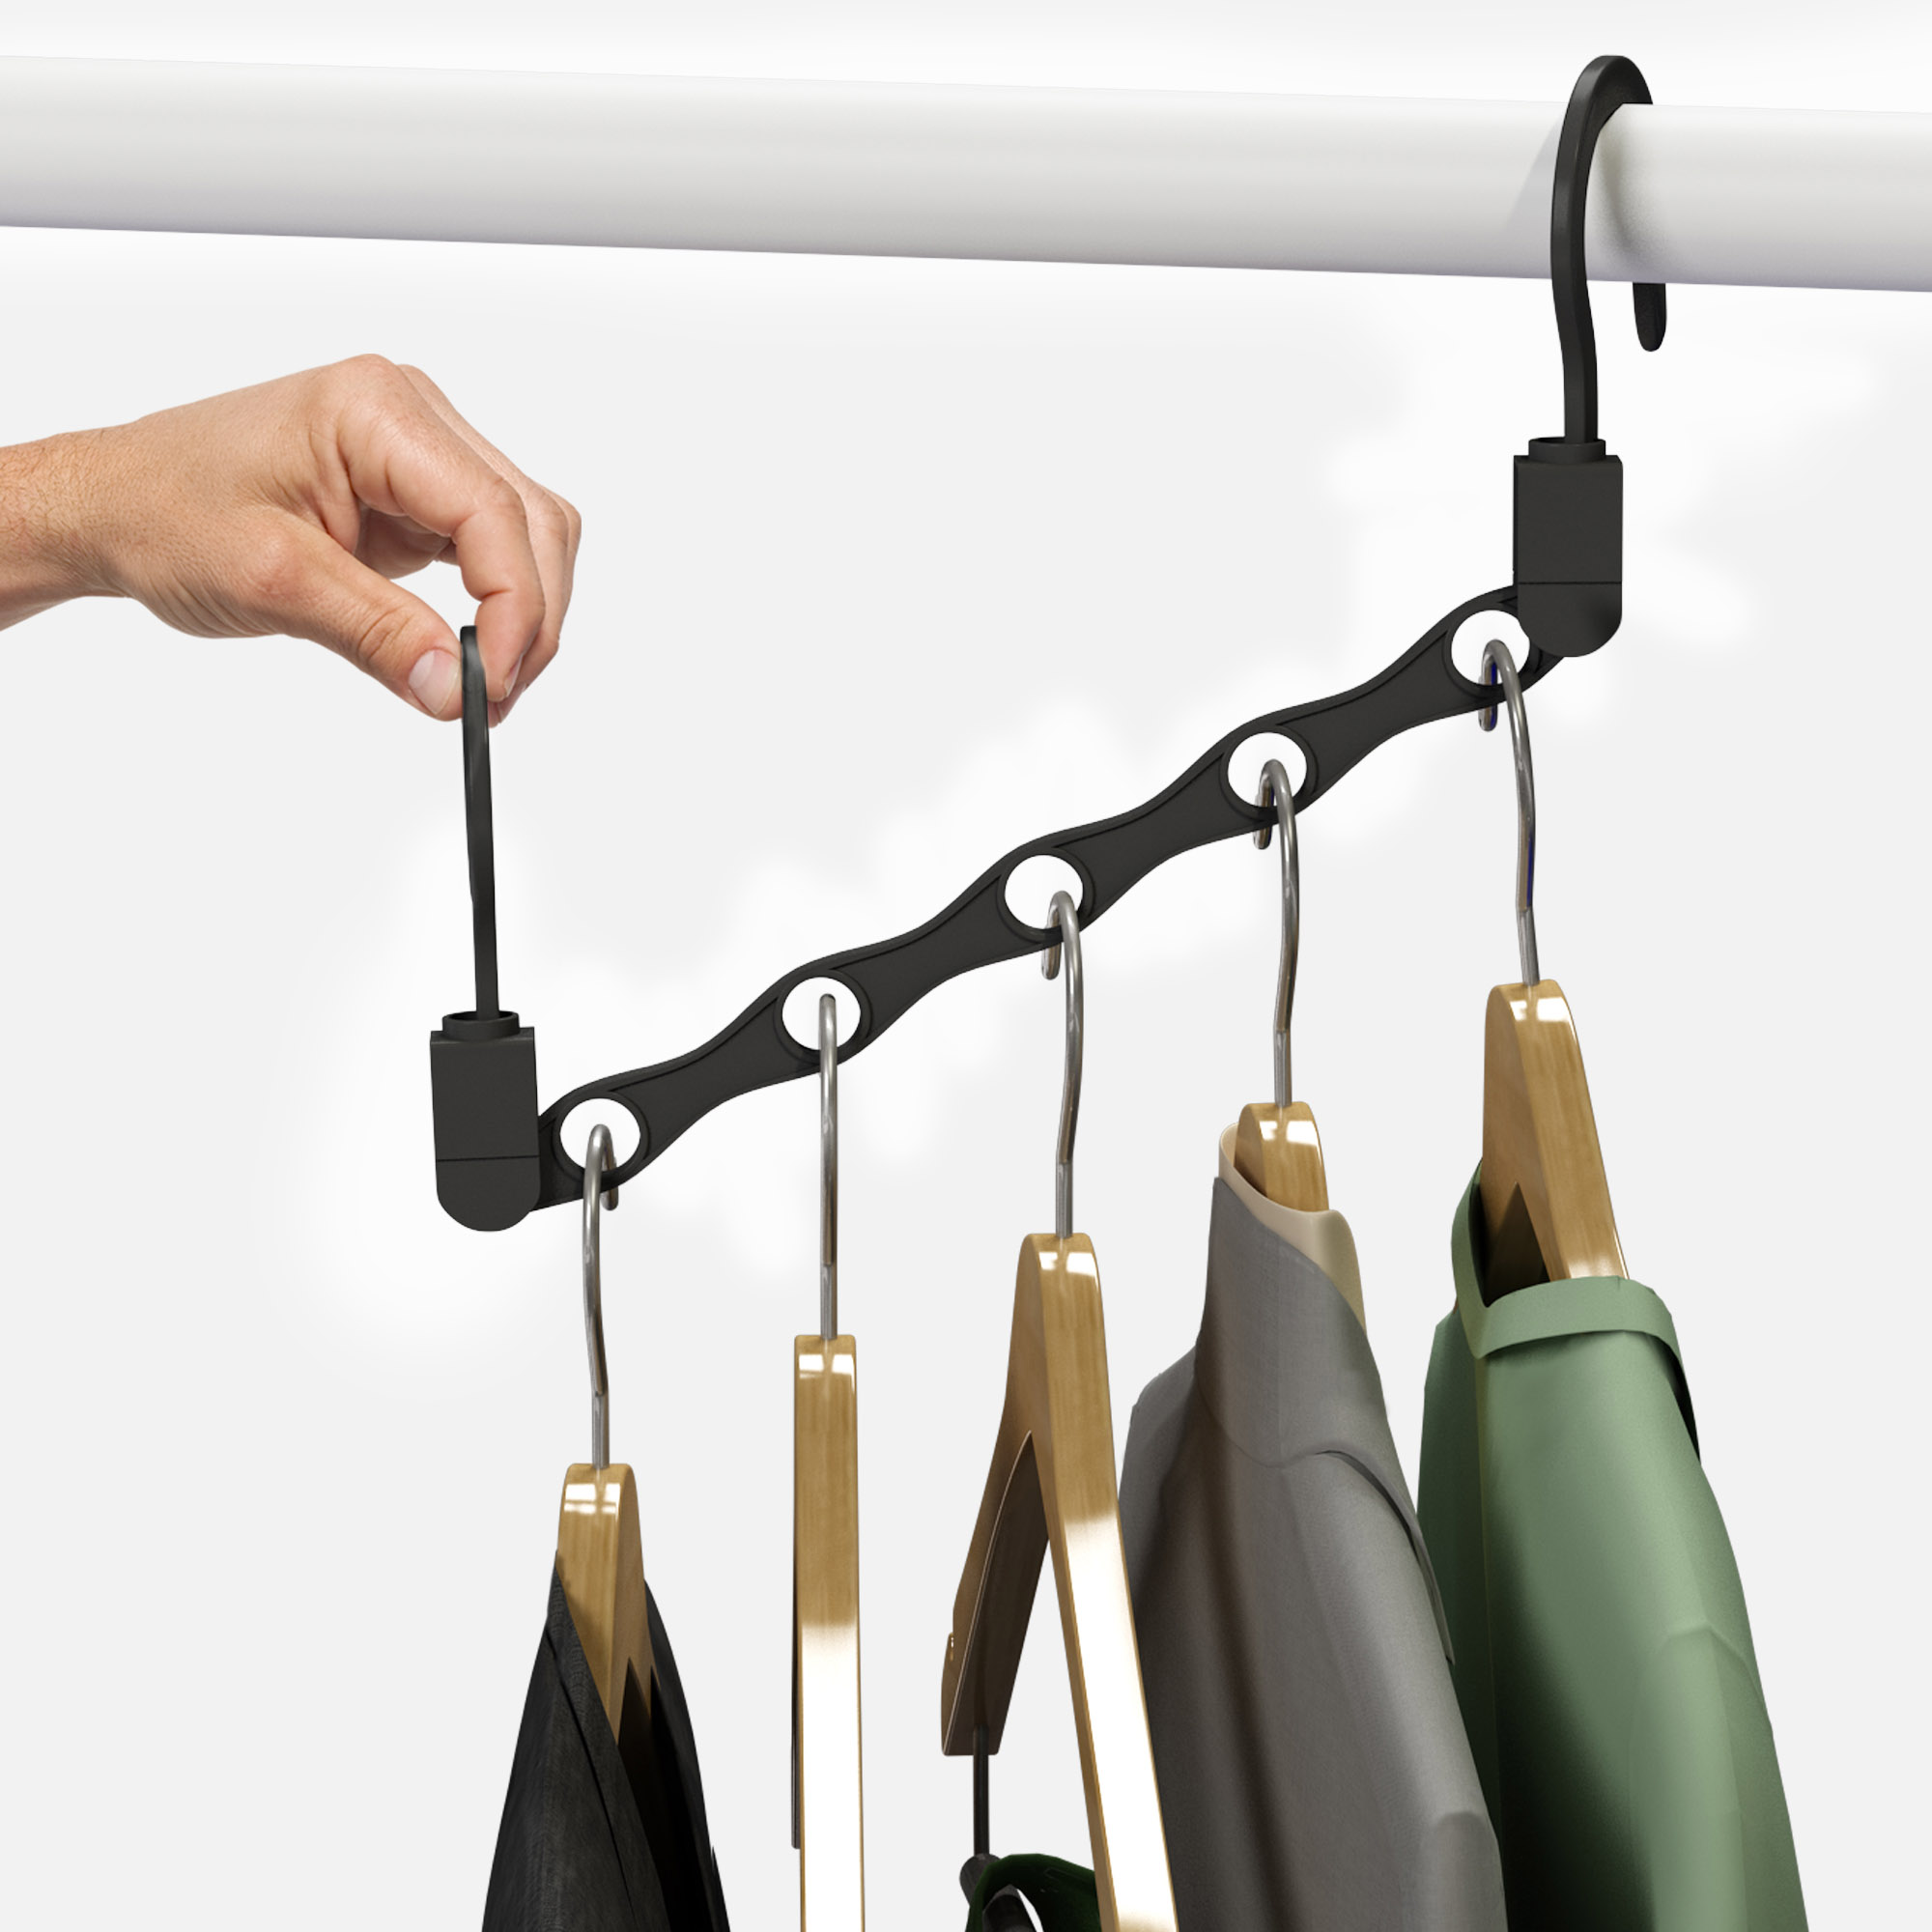 Space Saving Closet Organization Vertical And Horizontal Multi Standing Hanger Multifunction Stand For Shirts Pants Coats All Your Dorm Room Essentials By Everyday Home